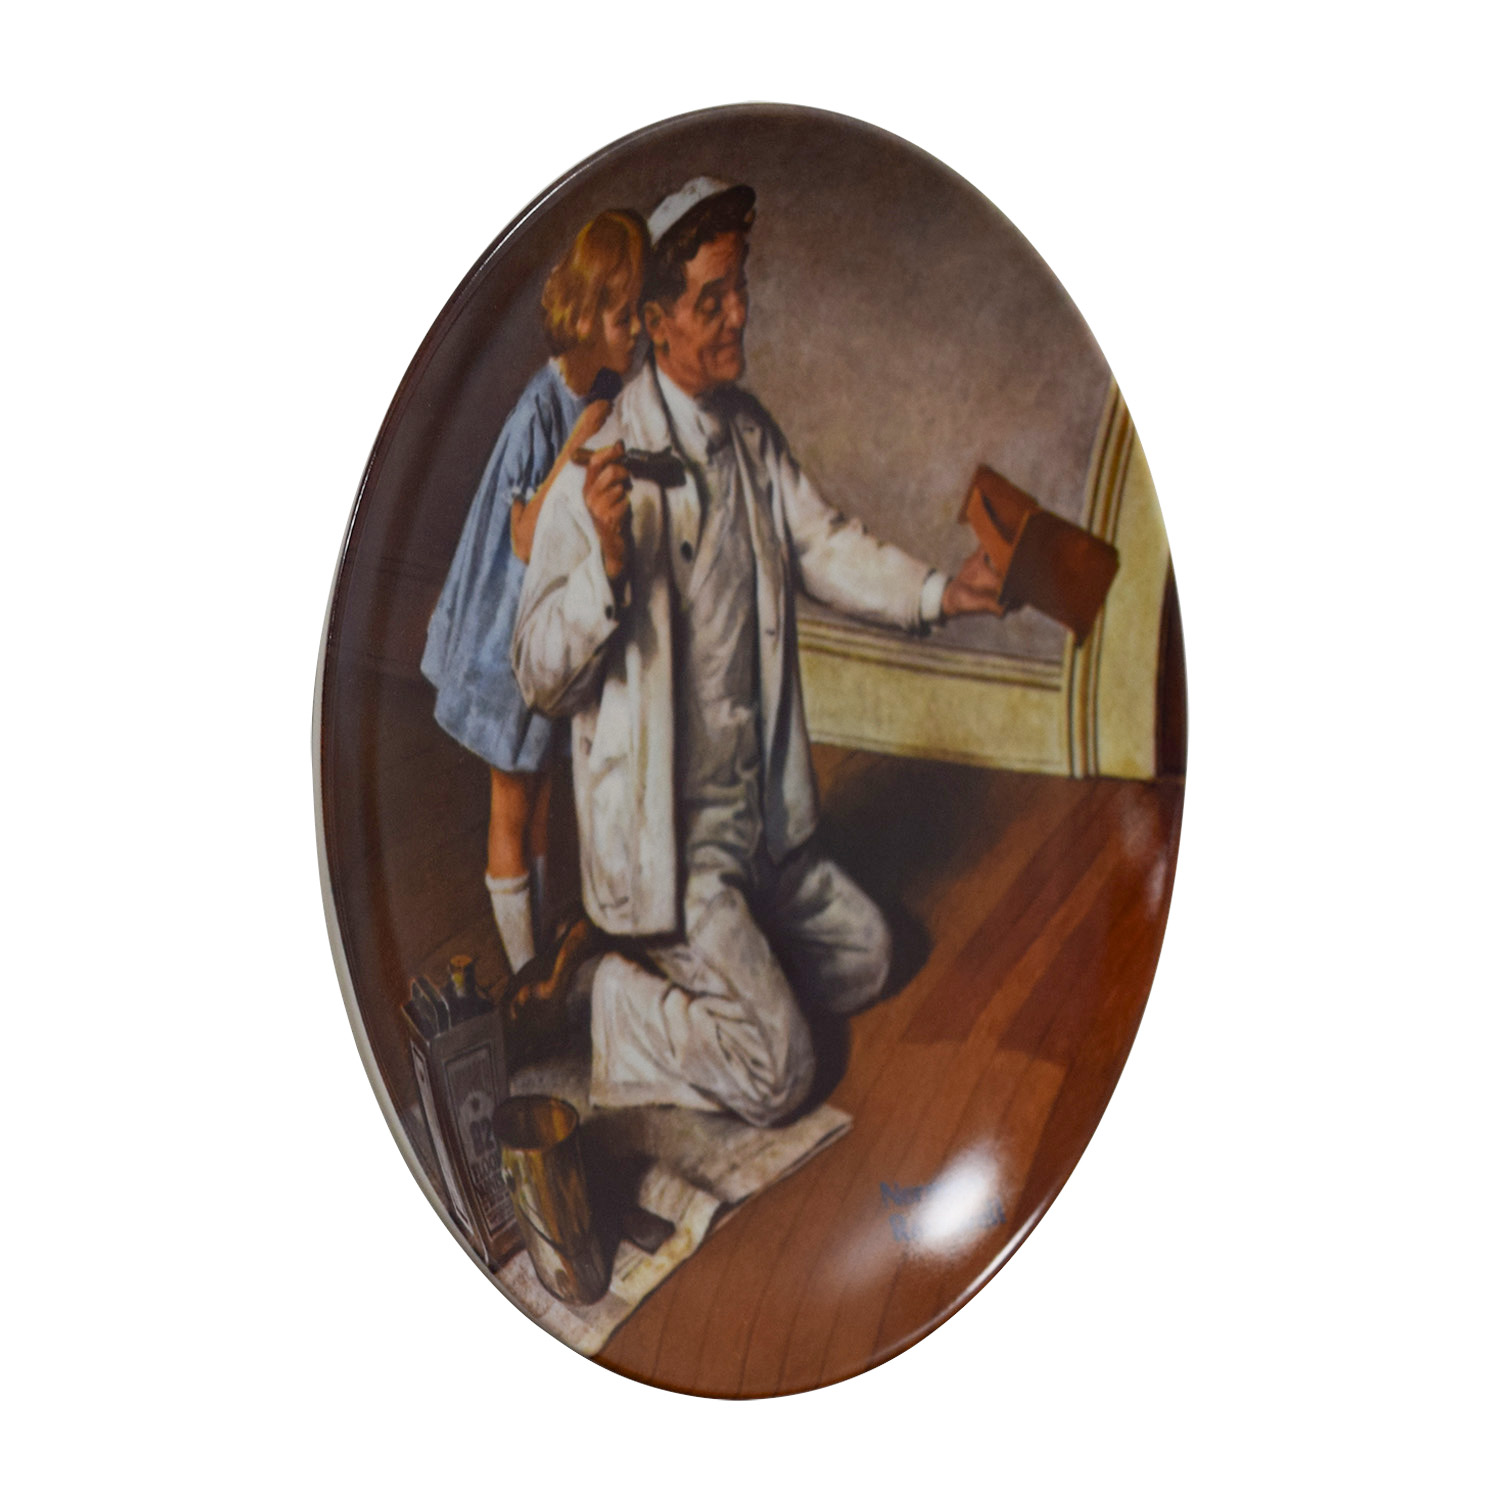 shop Edward M. Knowles Norman Rockwells The Painter Plate Edward M. Knowles